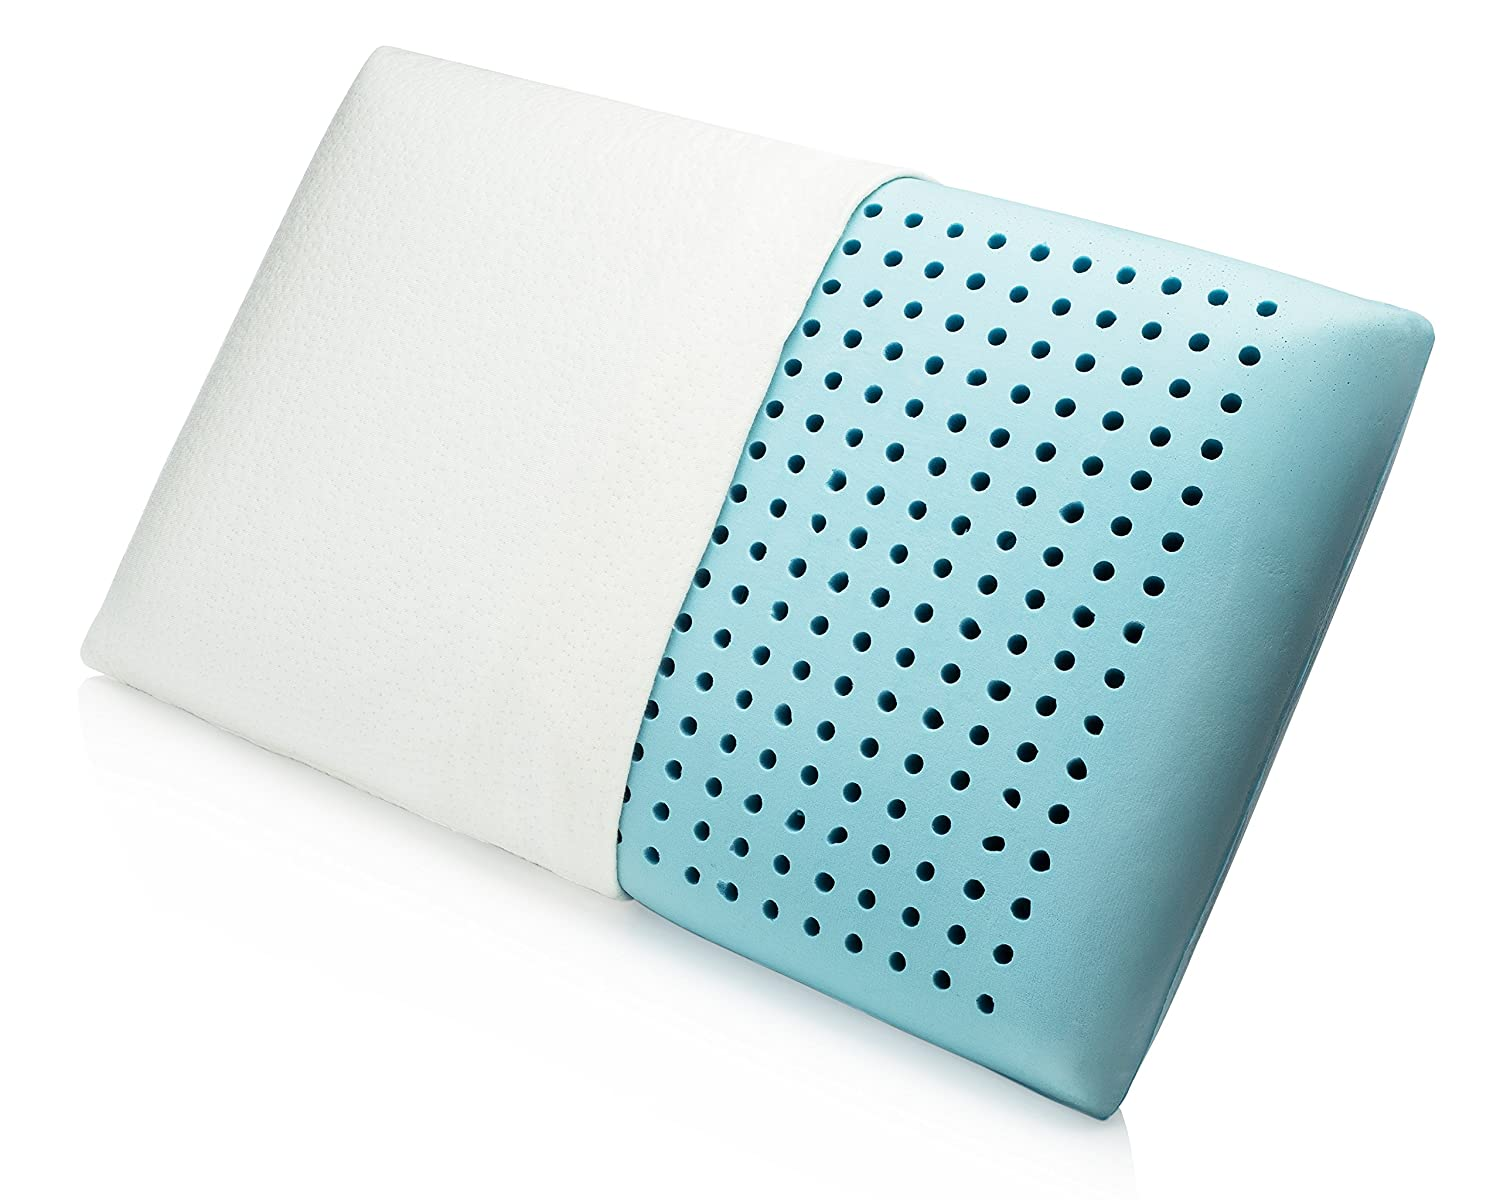 Cool Gel Memory Foam Pillow by MemorySoft with Air Flow Ventilation and Premium Bamboo Cover - All Position Sleeper